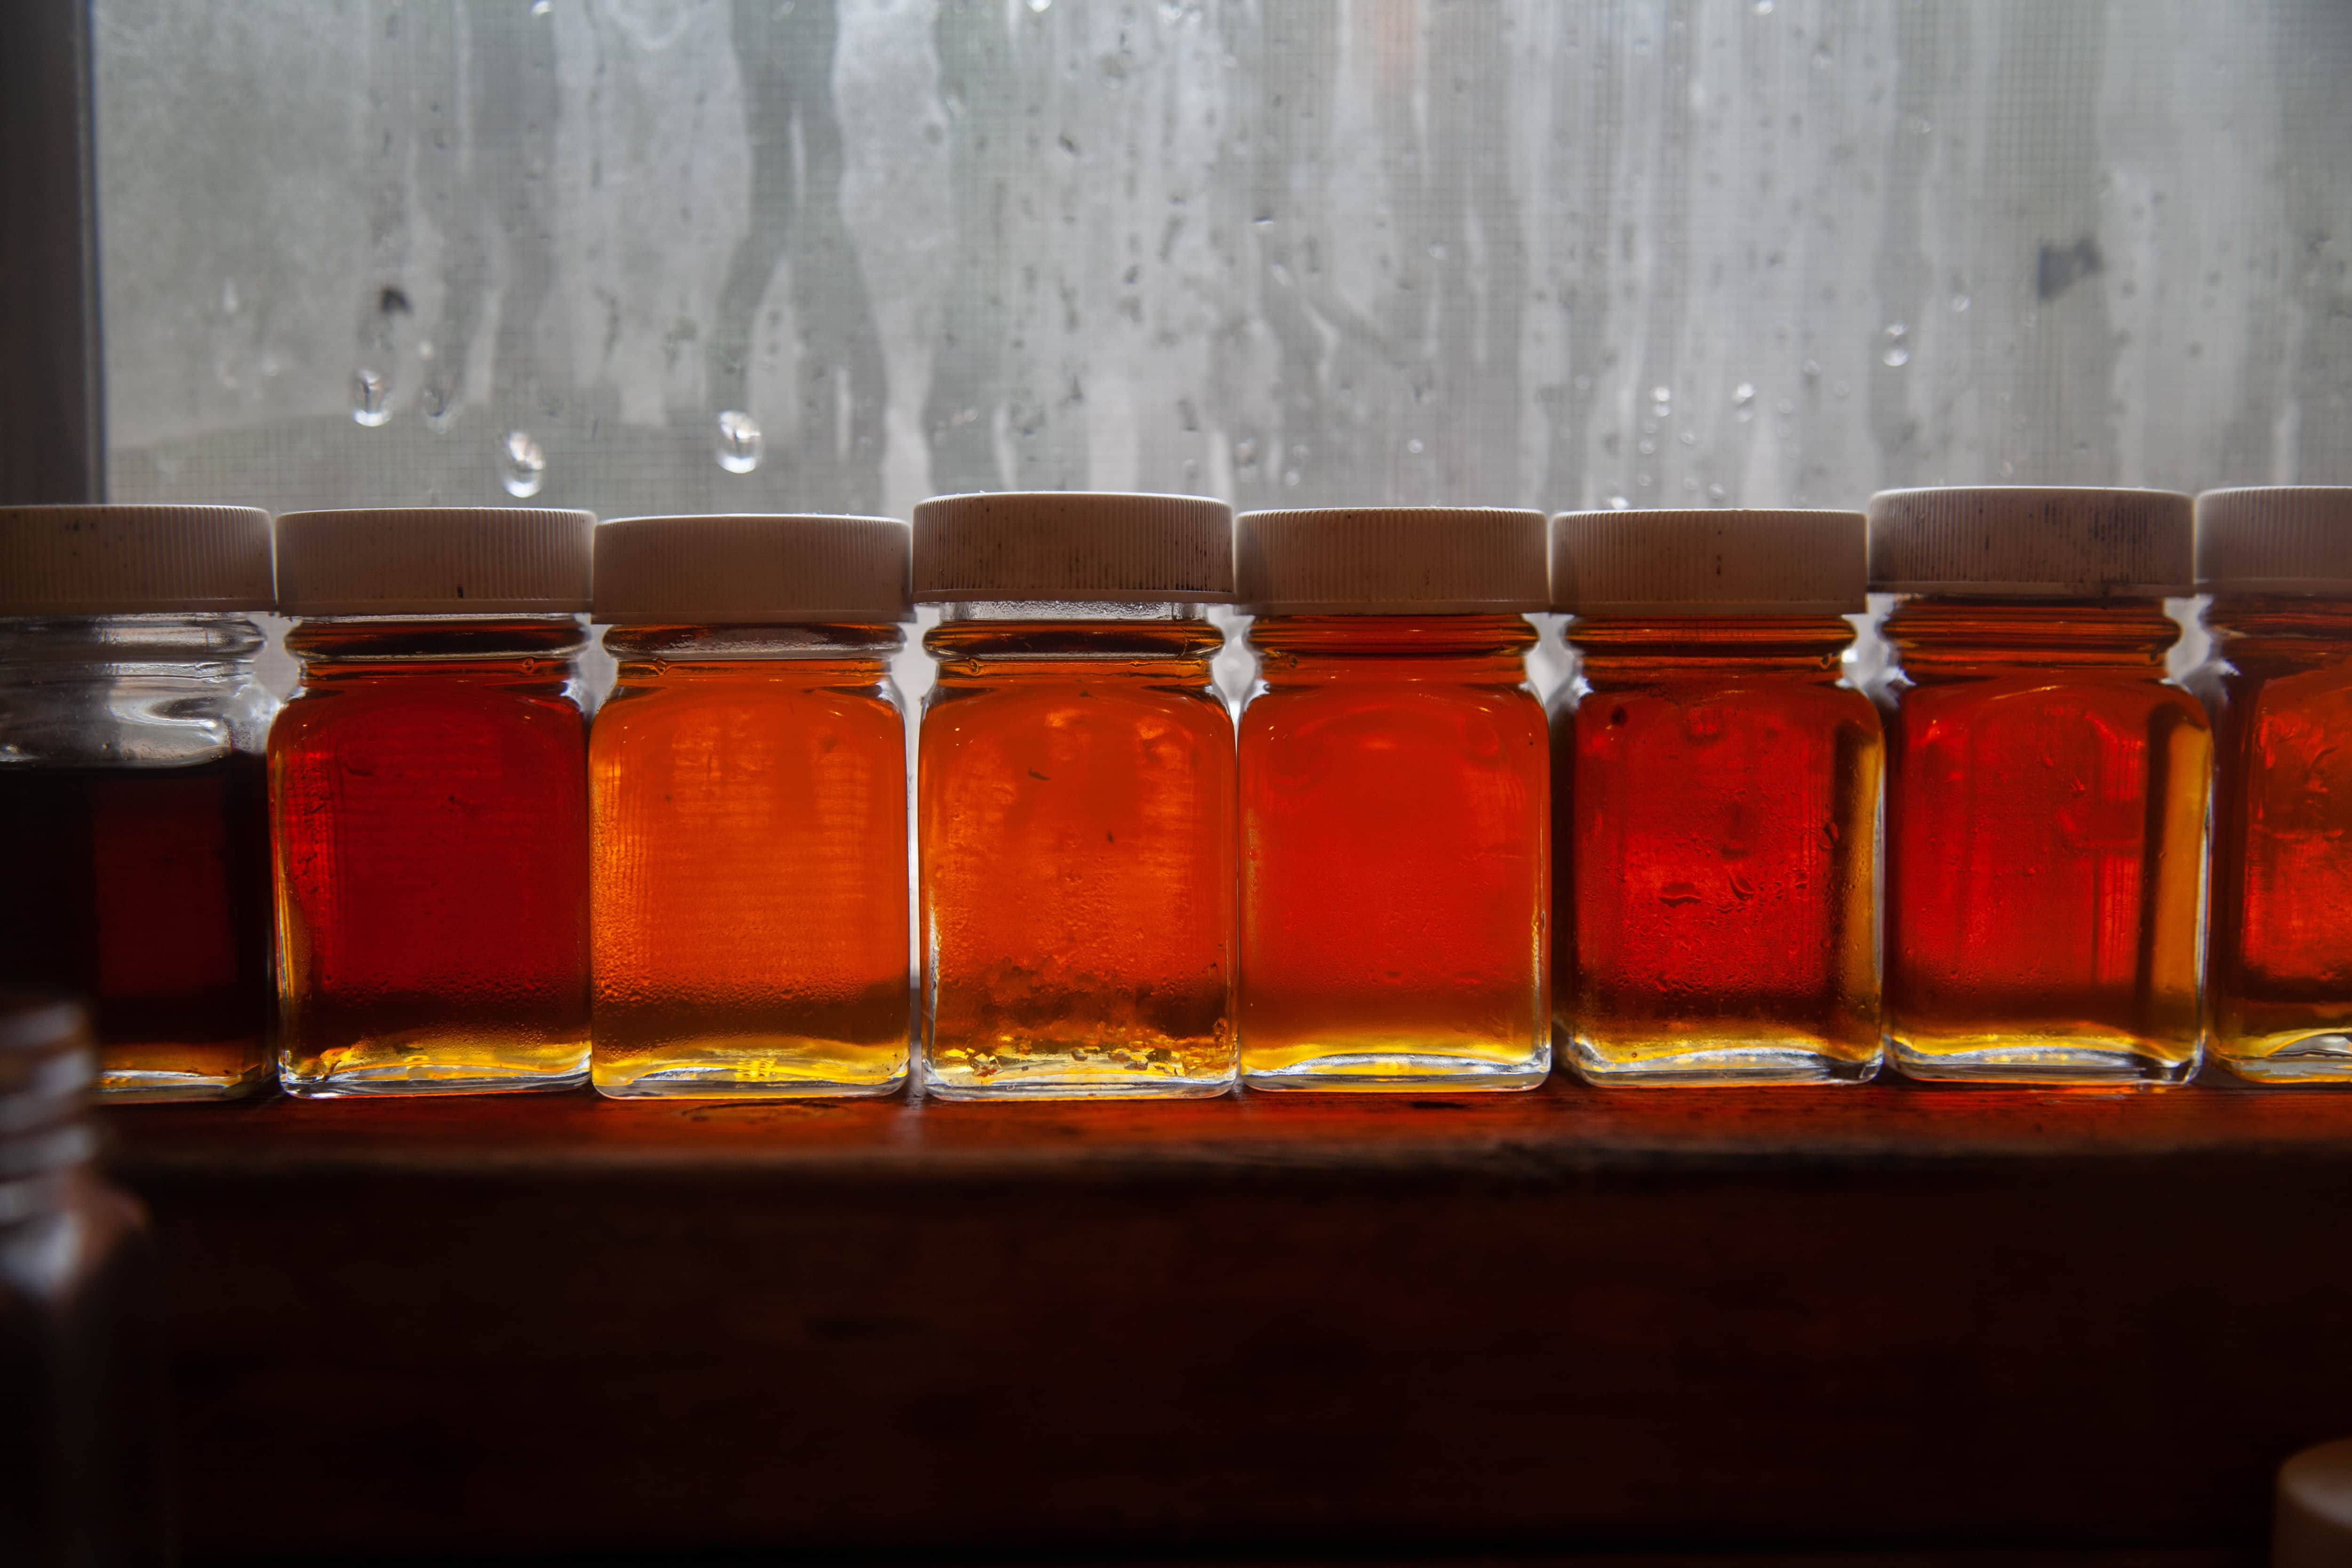 Syrup producers keep samples in clear glass jars that reveal the syrup's color.